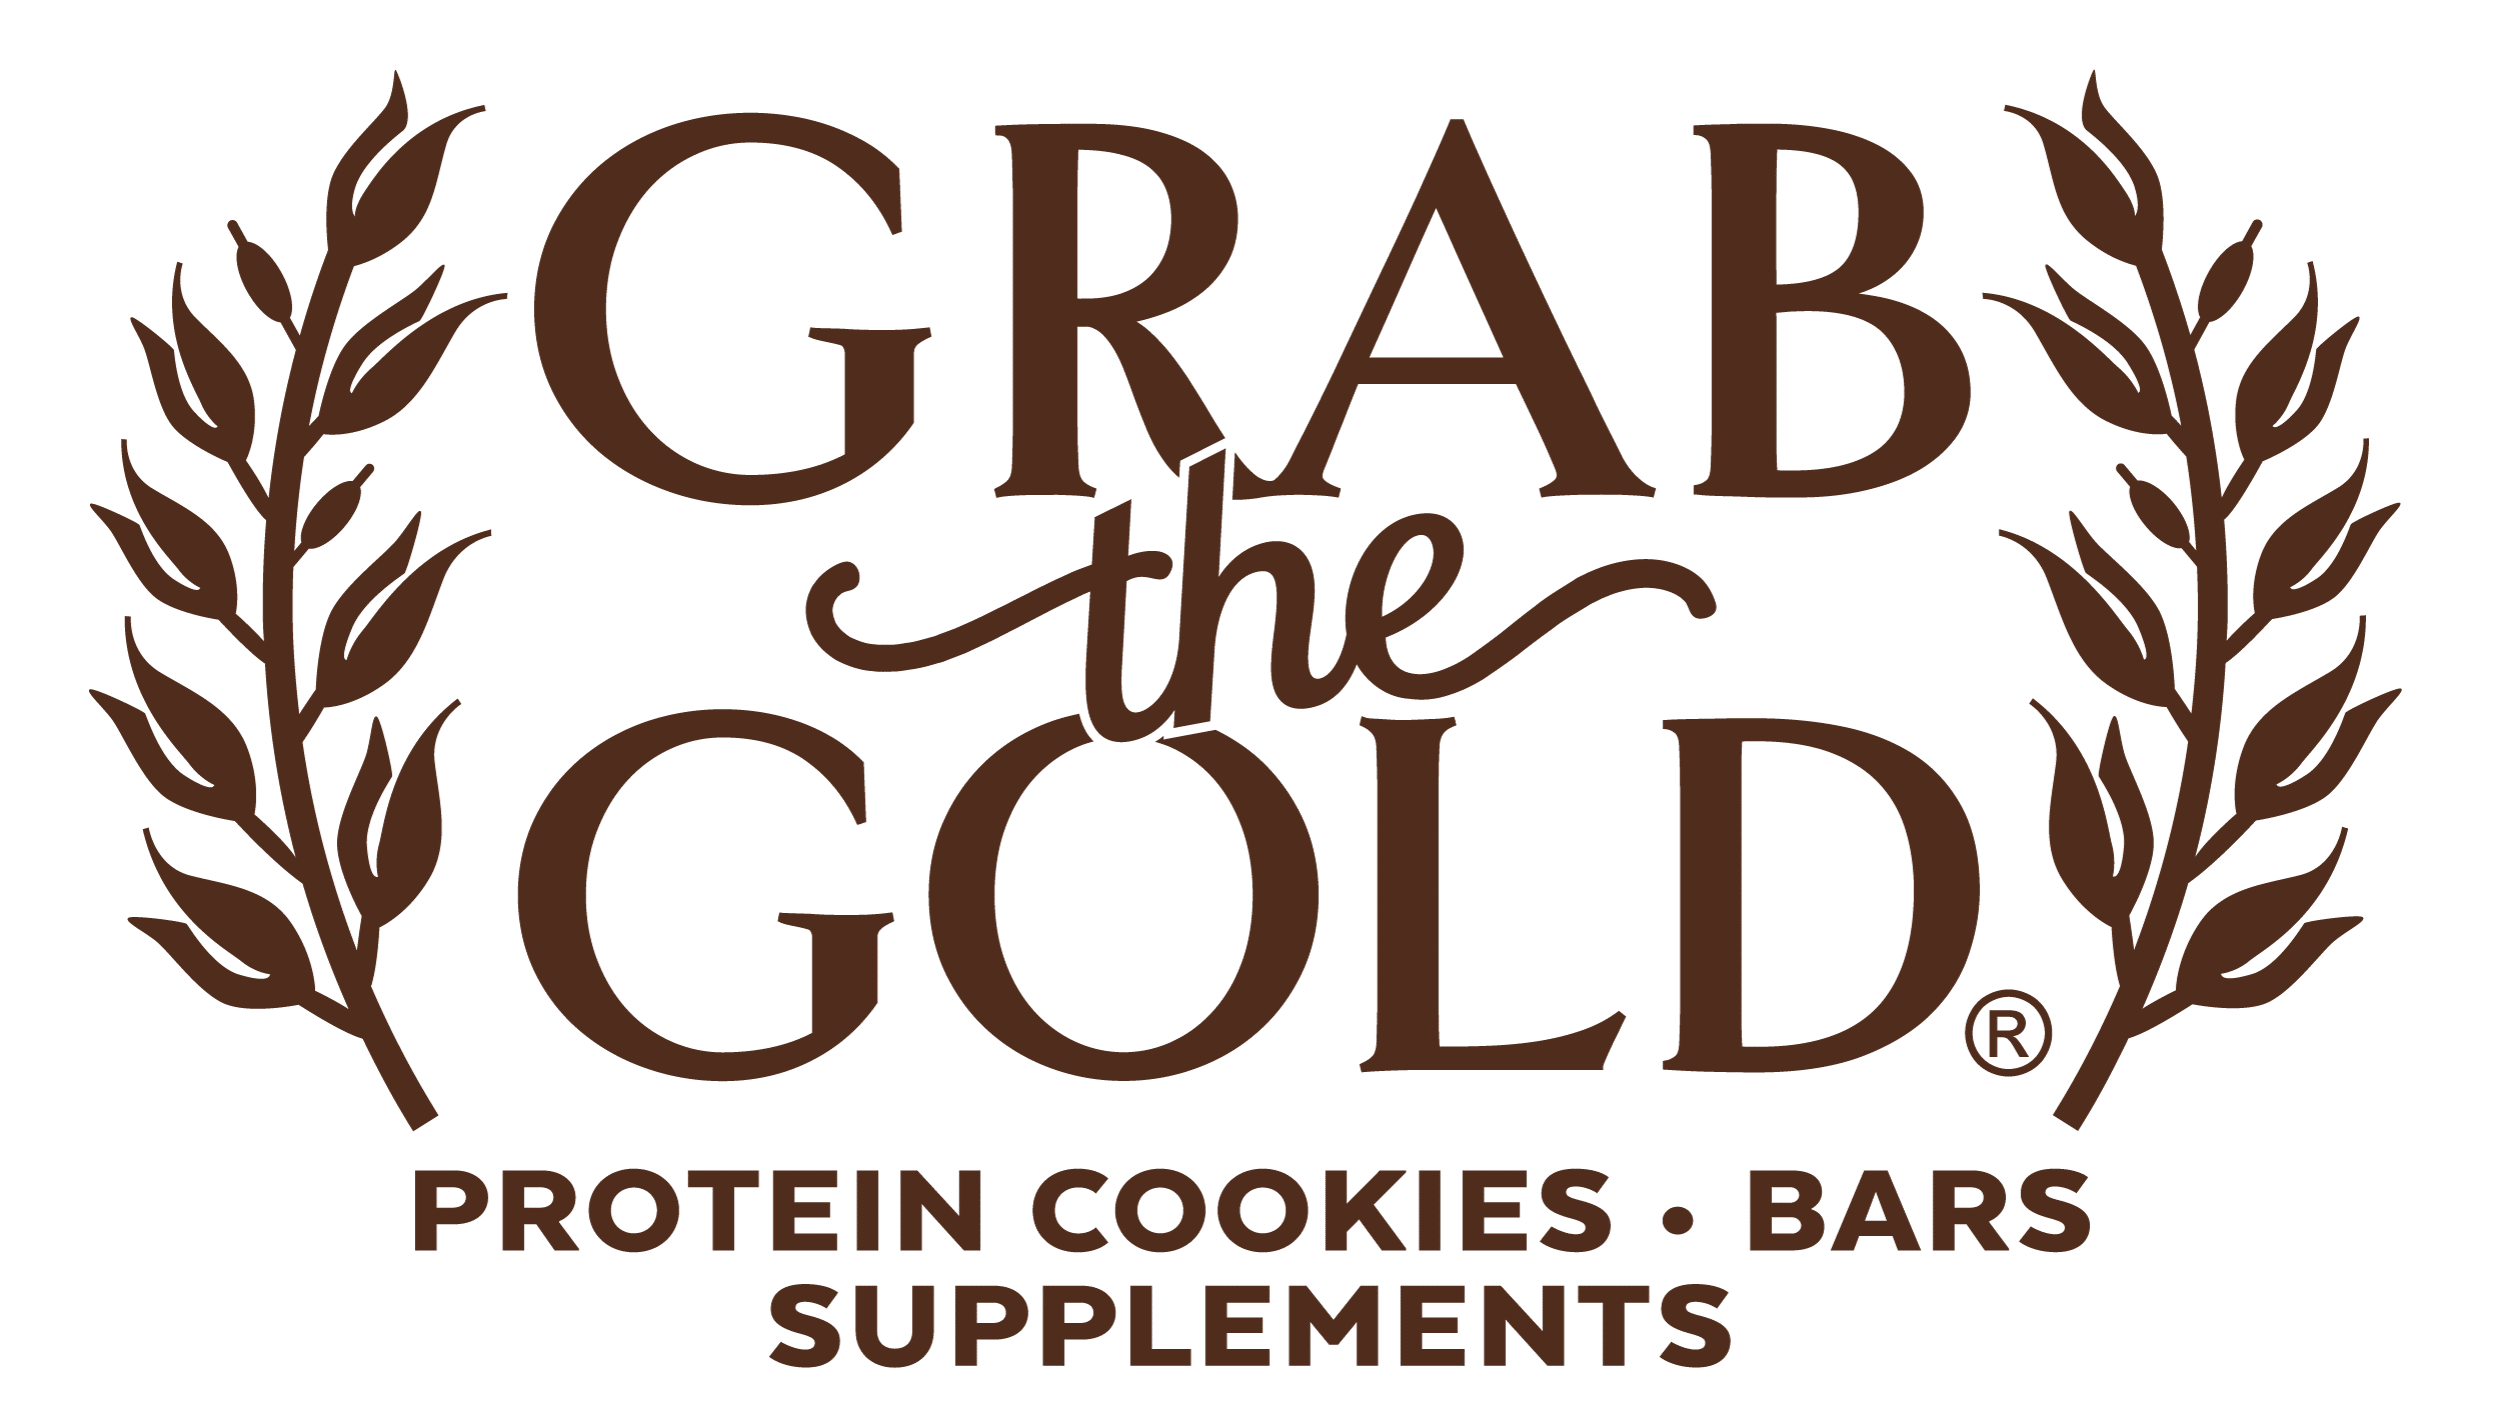 Grab The Gold Protein Cookies Bars Supplements Logo 02.20